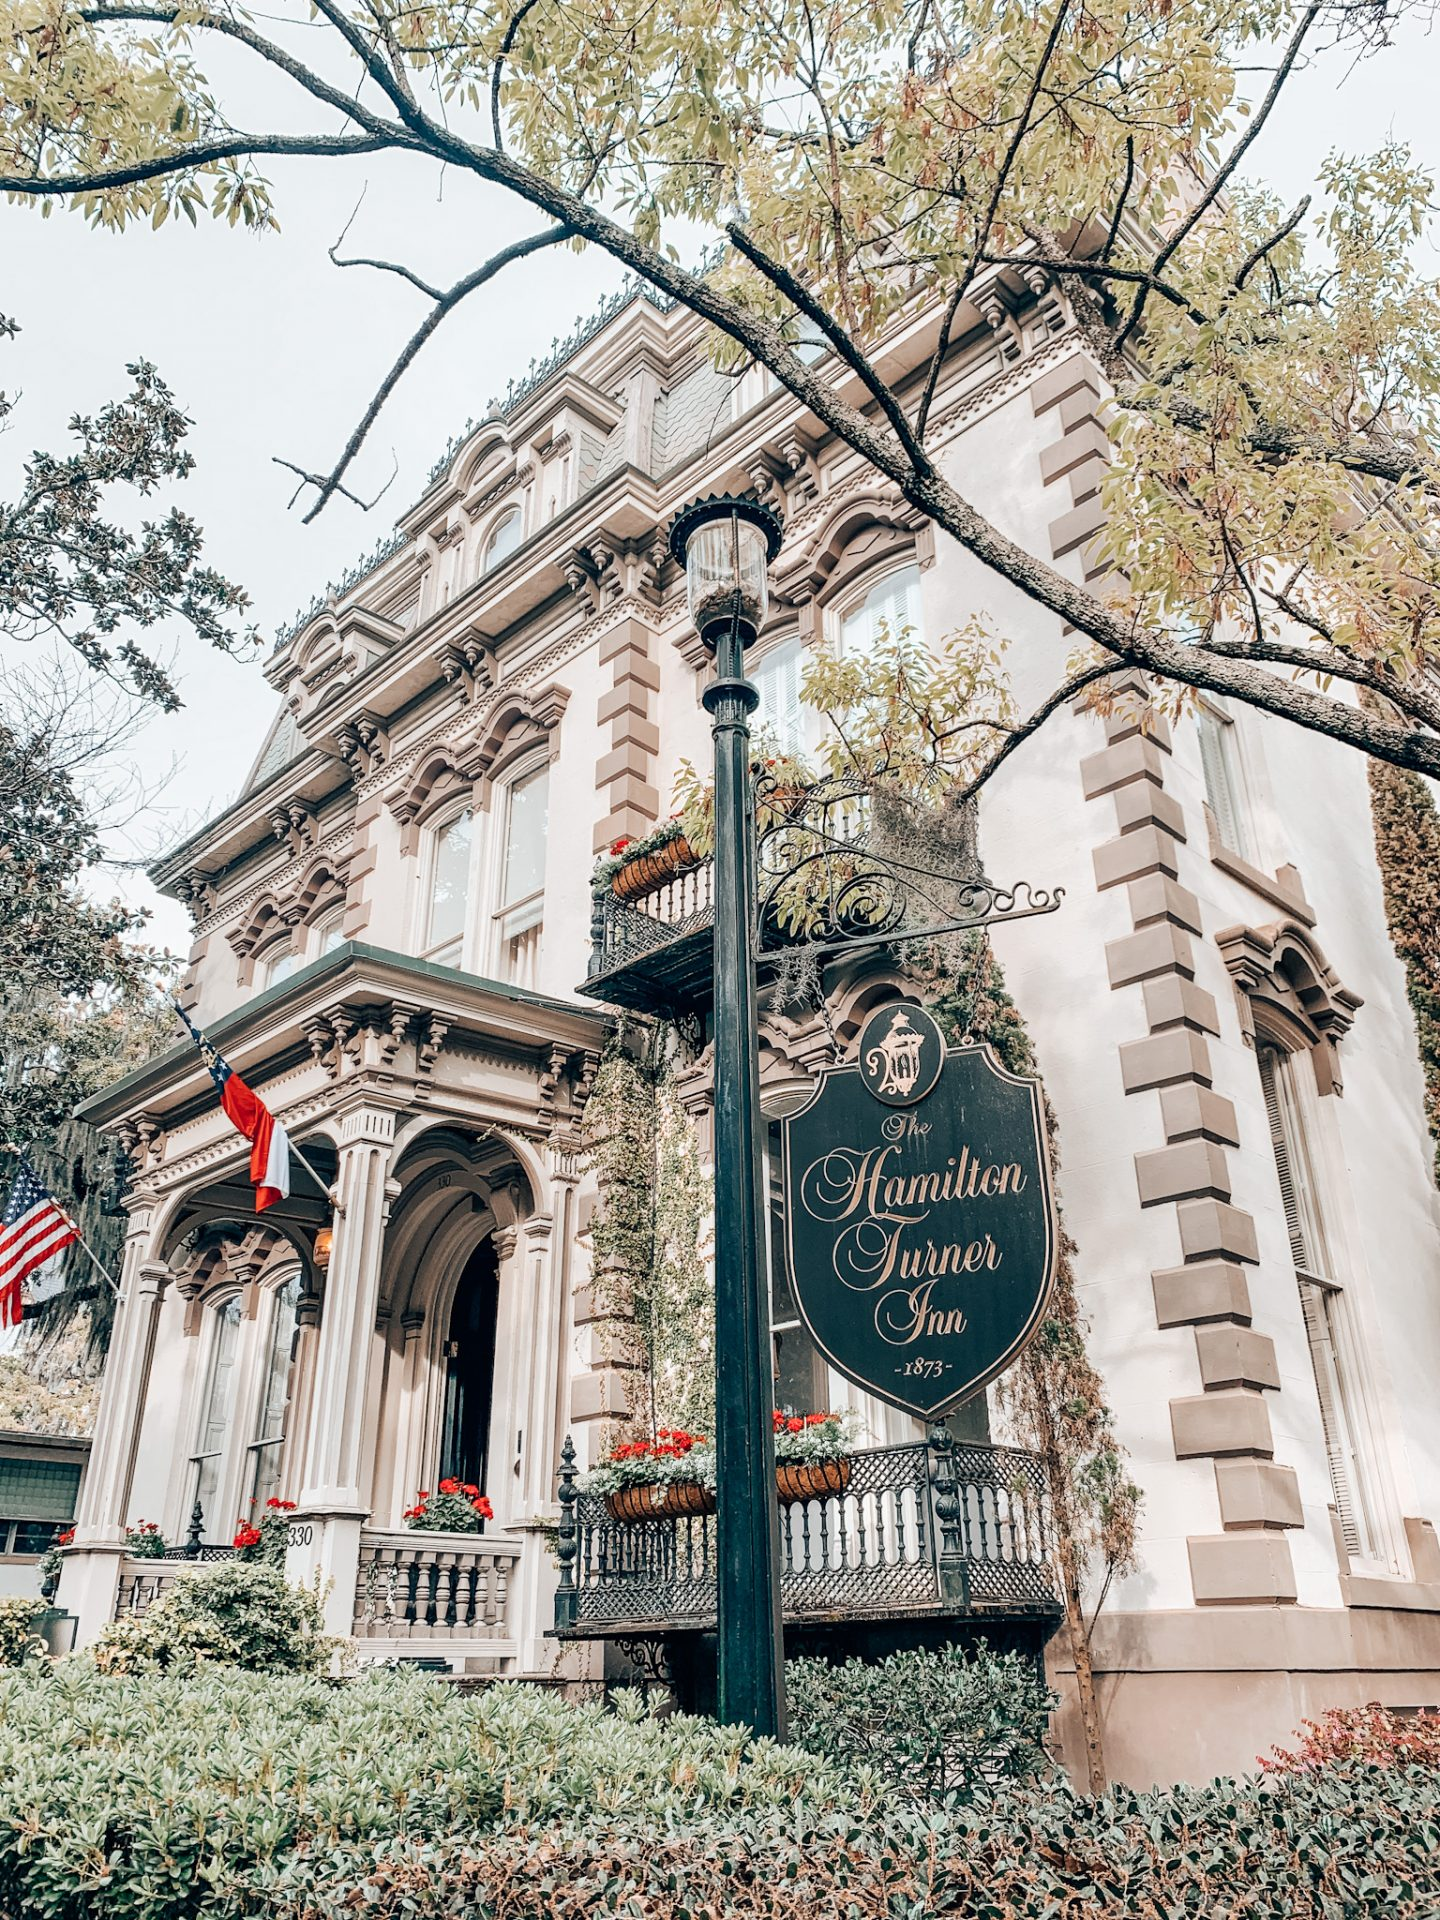 Hamilton Turner Inn in Savannah, Georgia